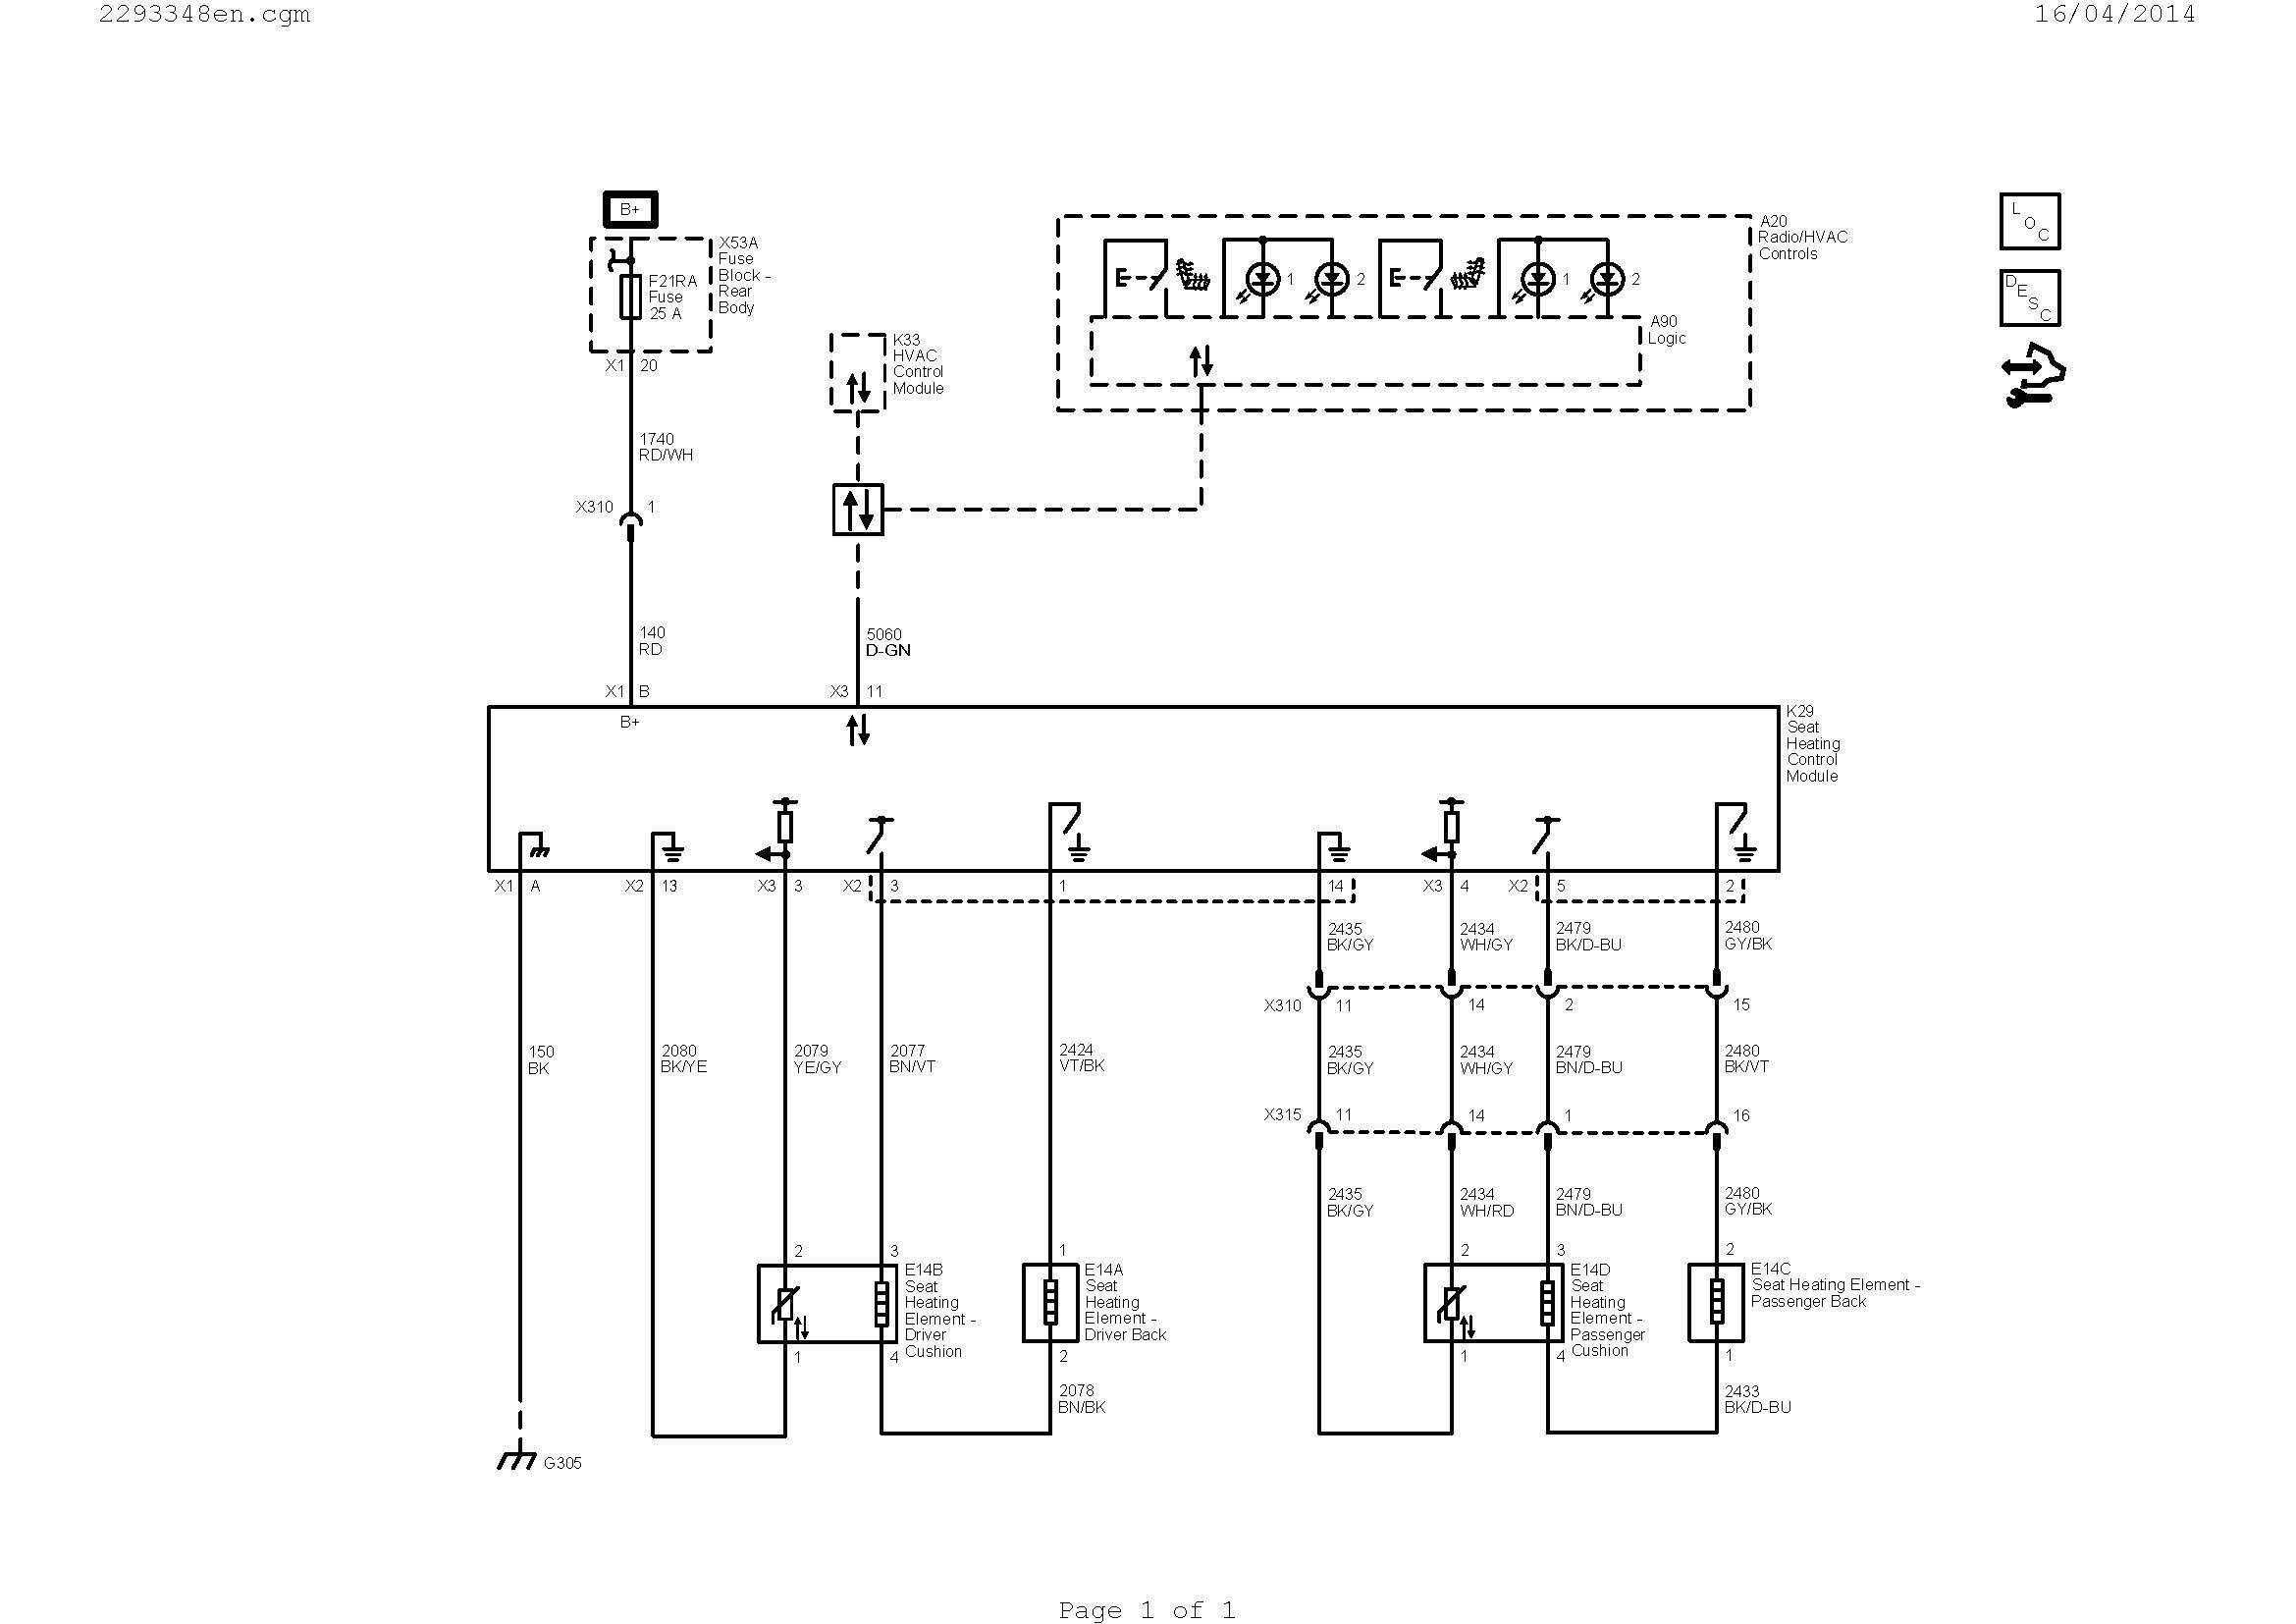 Digital thermostat Wiring Diagram - Home thermostat Wiring Diagram Download Wiring A Ac thermostat Diagram New Wiring Diagram Ac Valid Download Wiring Diagram 14i